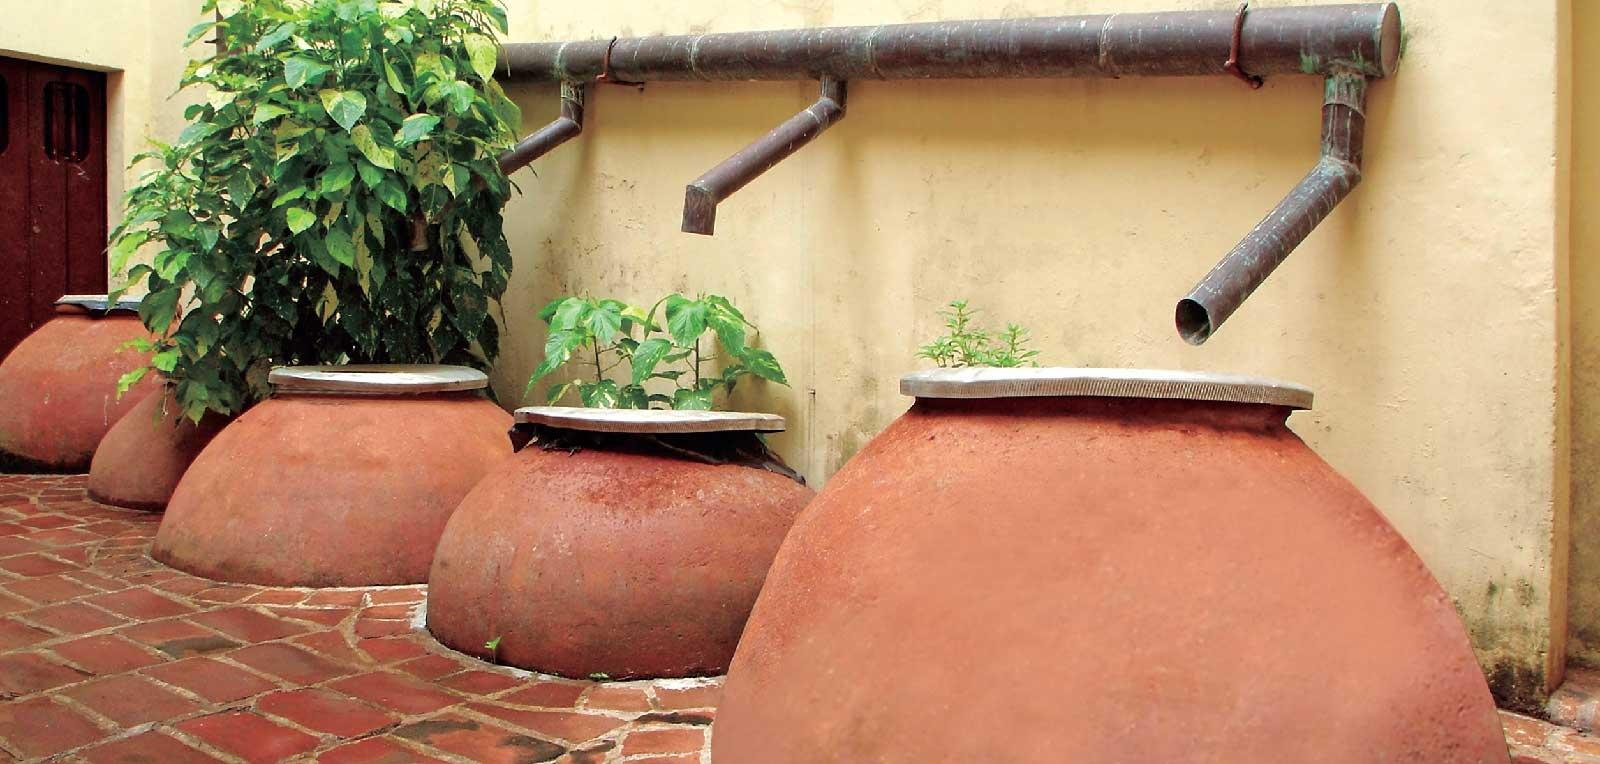 Water from the tinajon (earthenware clay pot), to stay in Camagüey